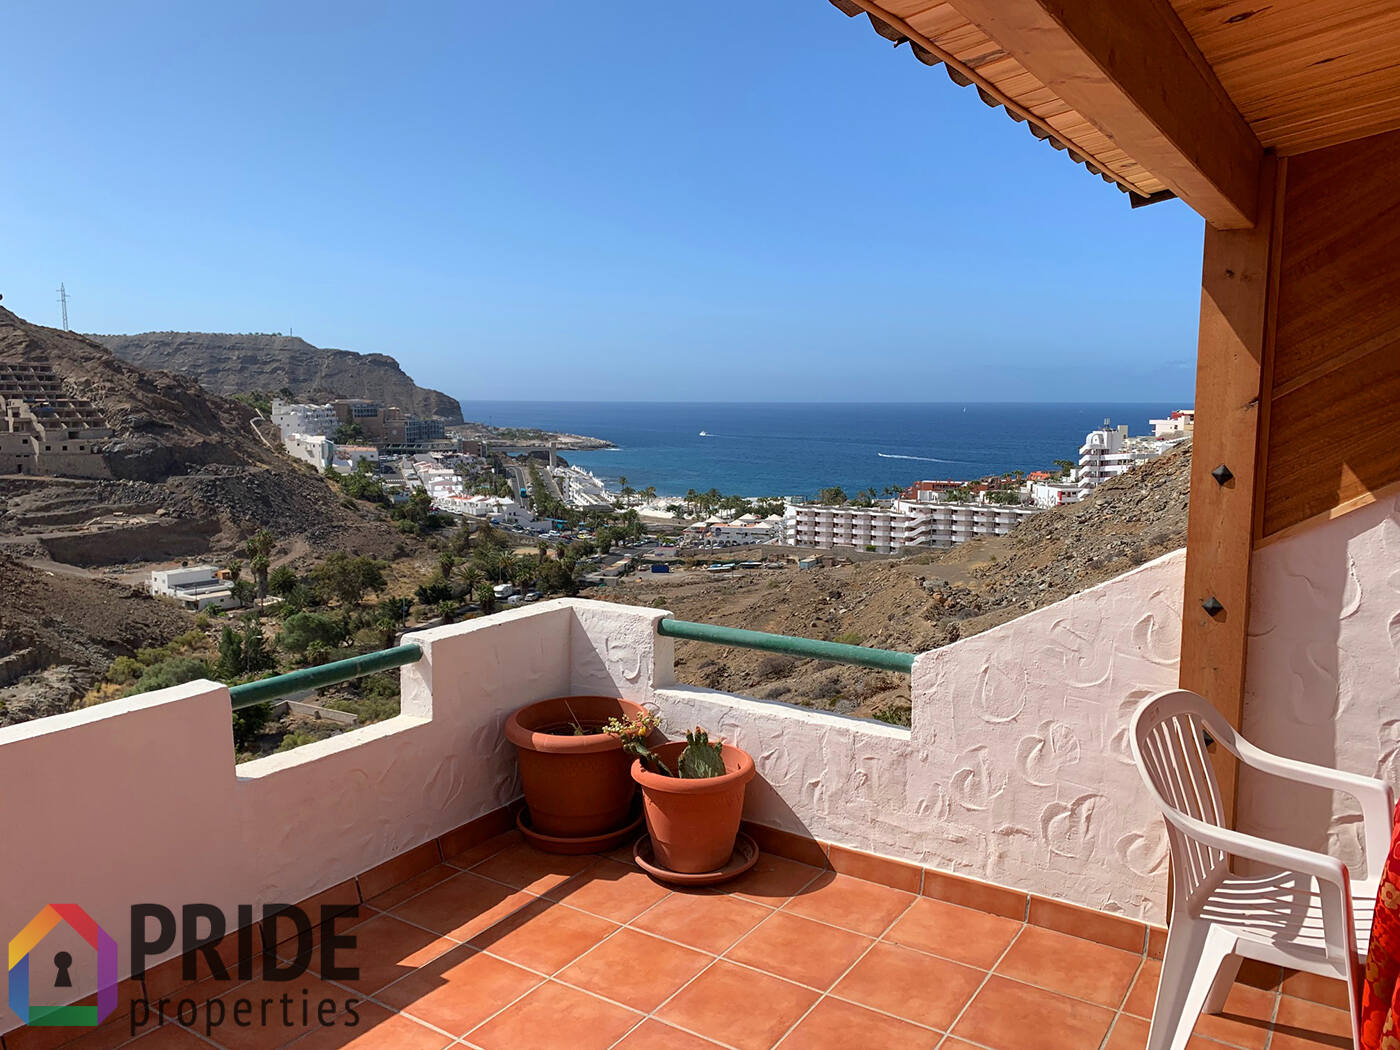 Playa del Cura: 2-bedroom apartment with big terrace and sea views